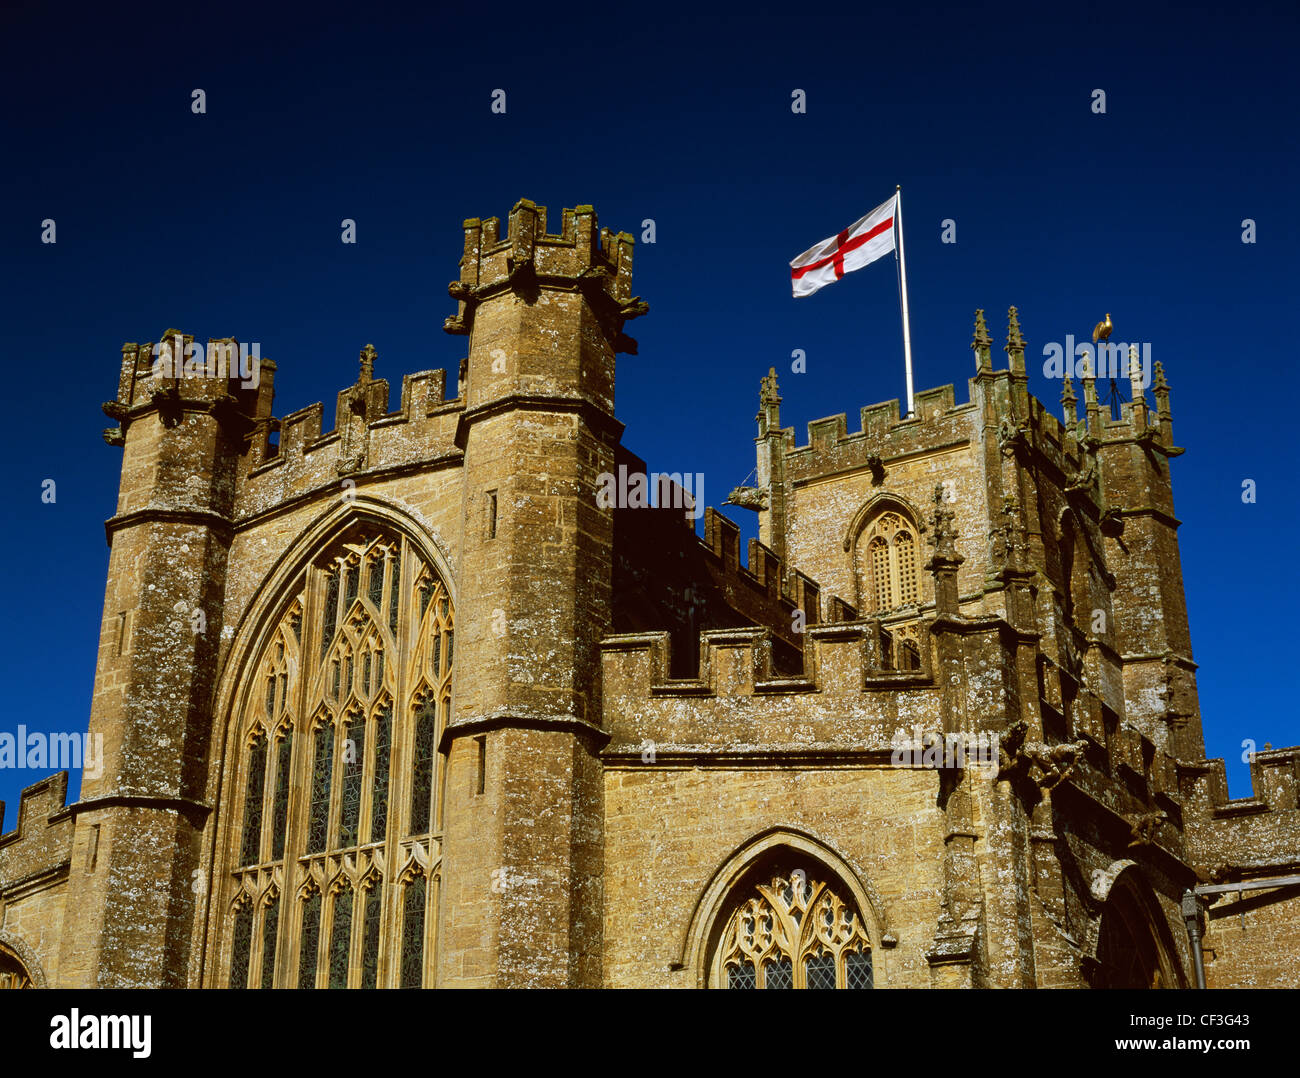 Flag of St George - red cross on a white background - flying from the tower of St Bartholomew's late Medieval - Stock Image